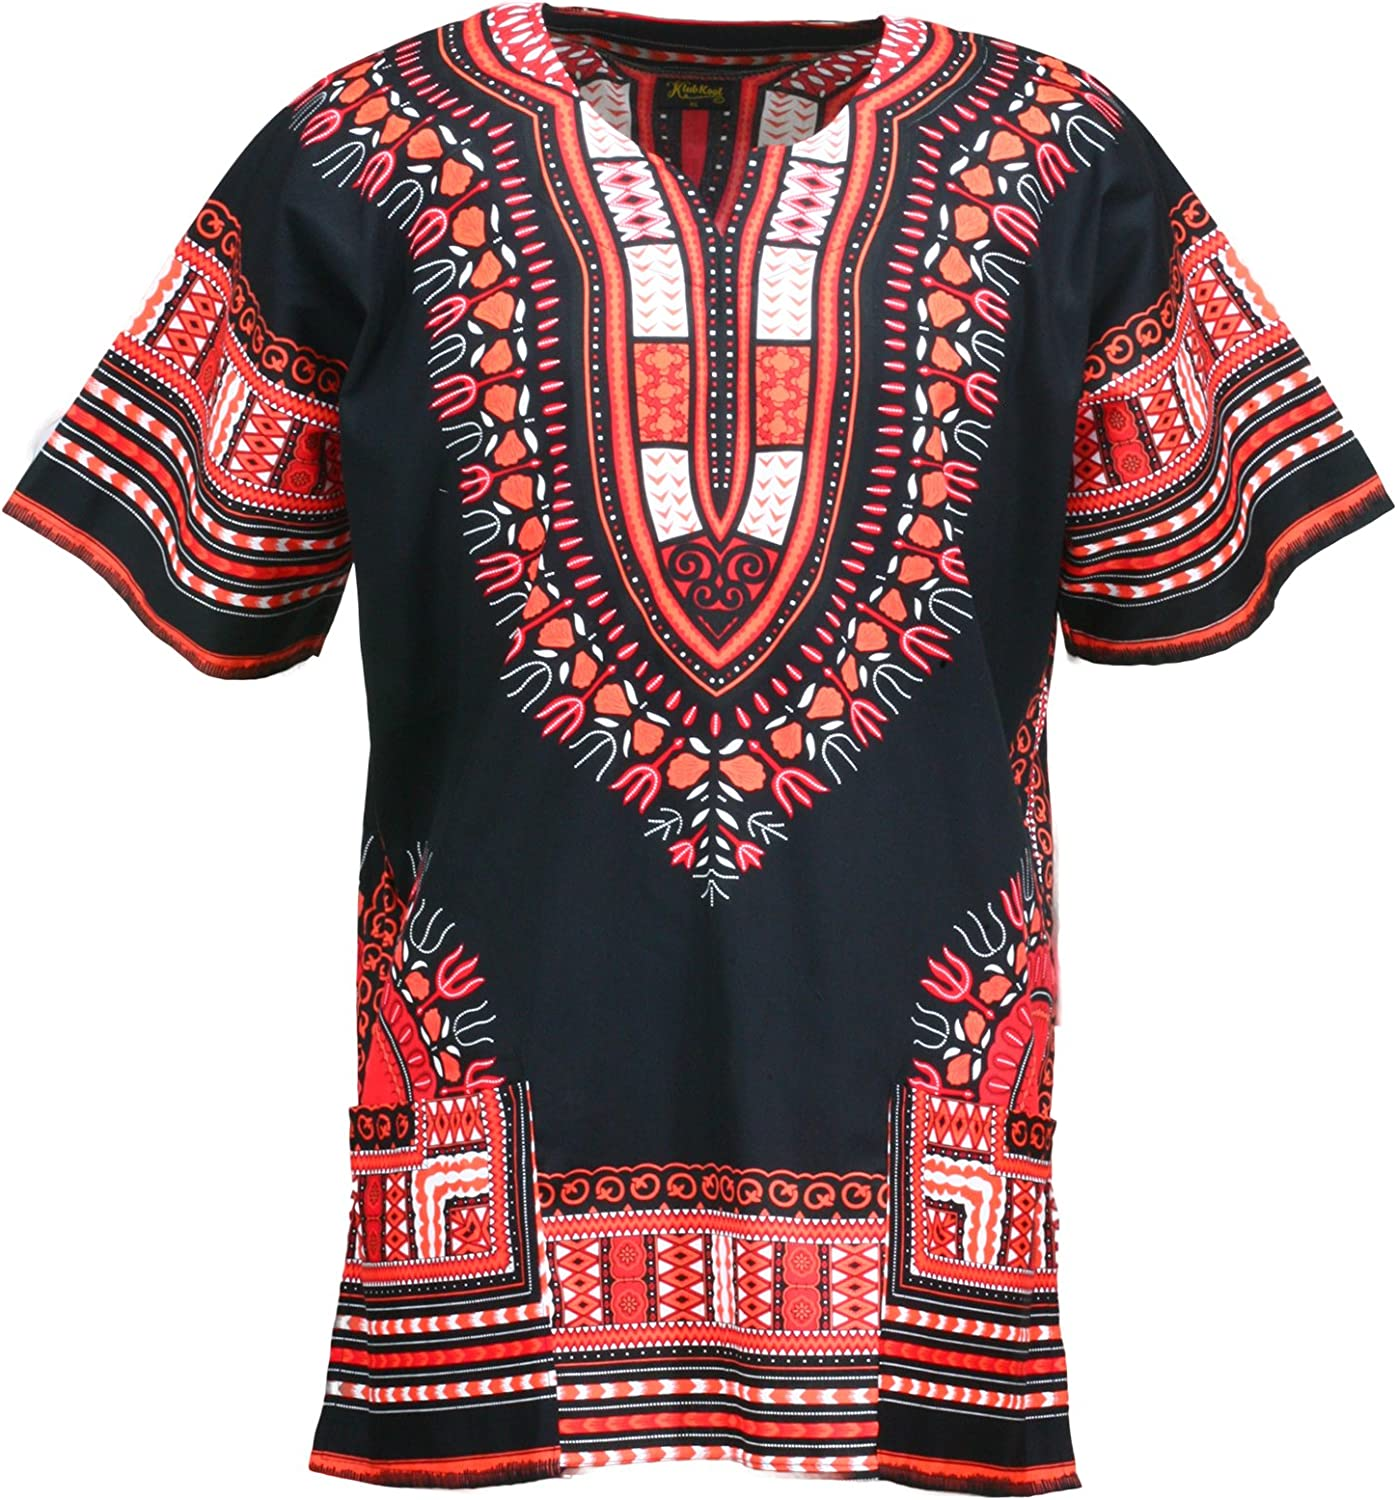 1960s – 70s Mens Shirts- Disco Shirts, Hippie Shirts KlubKool Dashiki Shirt Tribal African Caftan Boho Unisex Top Shirt $12.50 AT vintagedancer.com